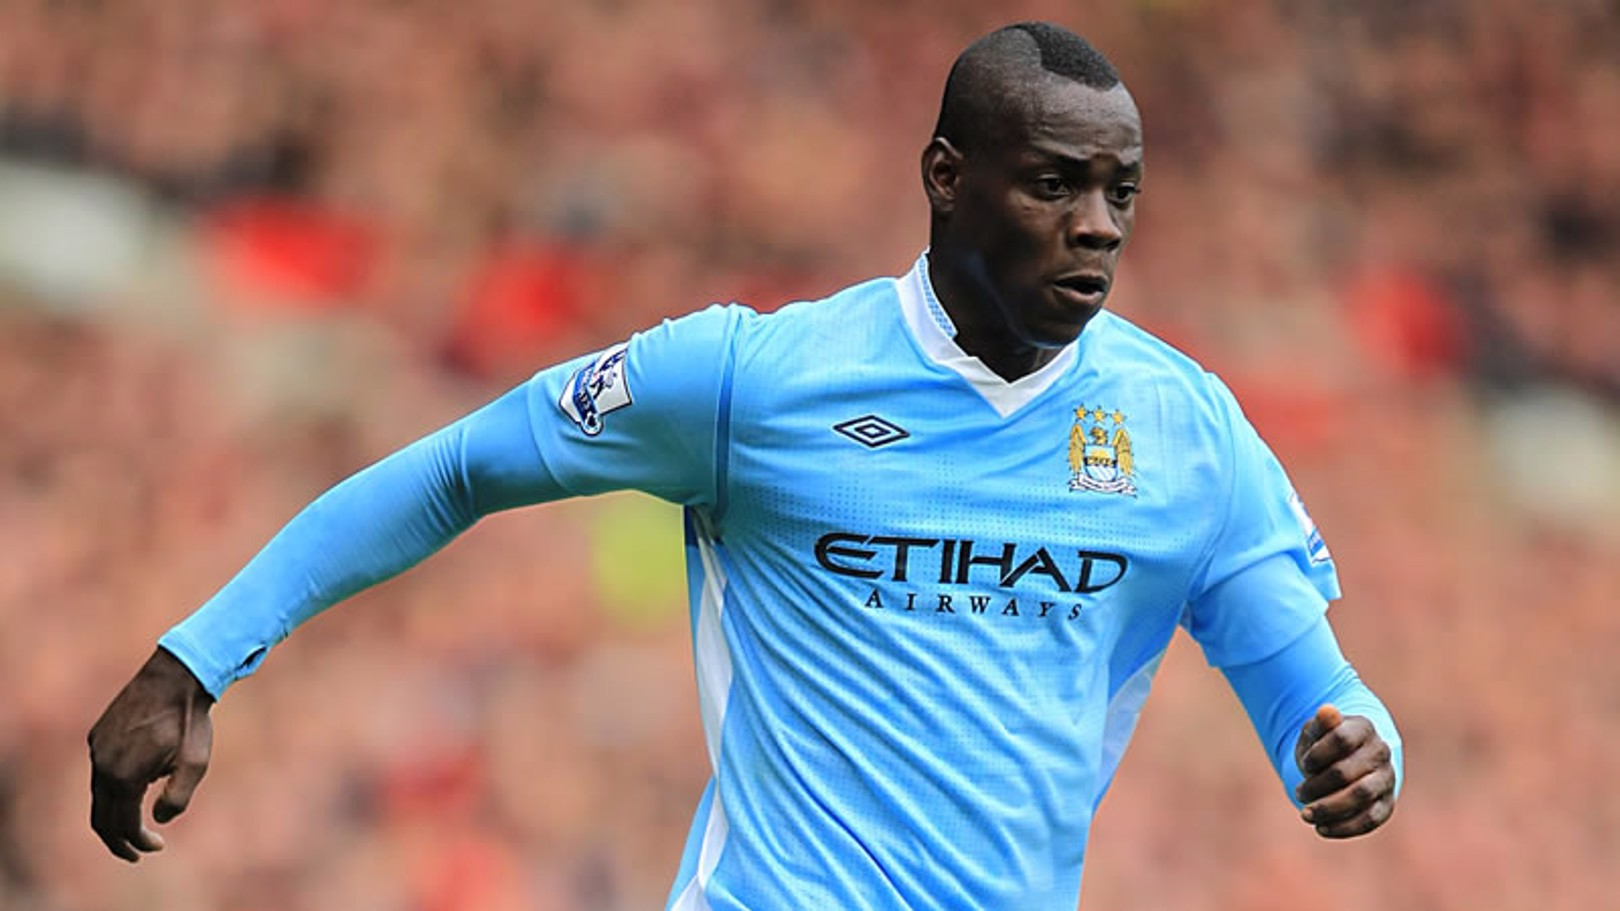 Image result for balotelli man city 2011